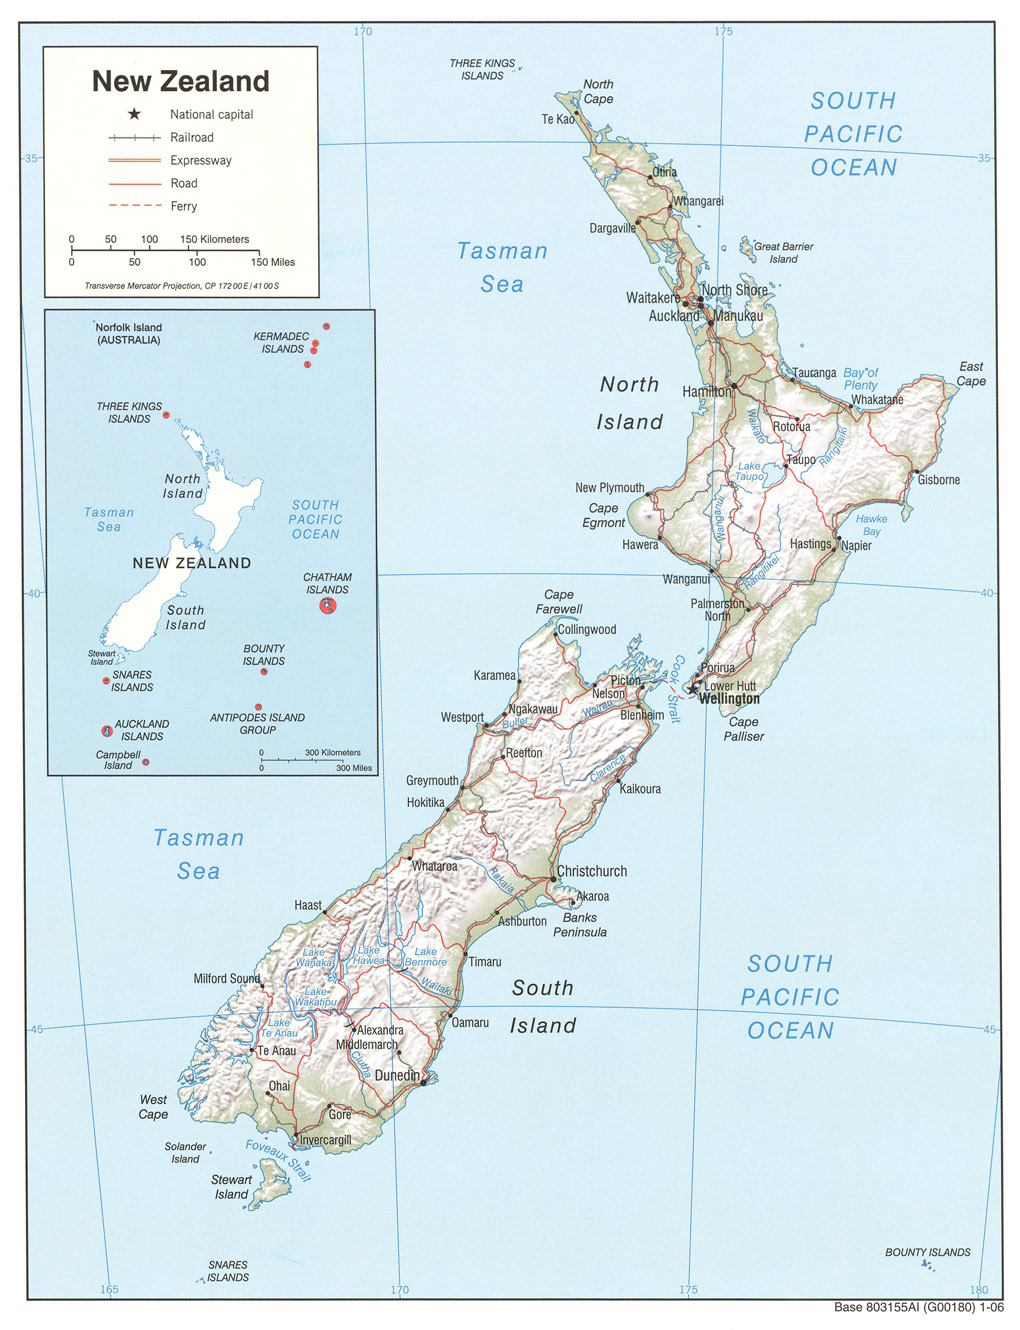 Maps of New Zealand maoripakehaconz